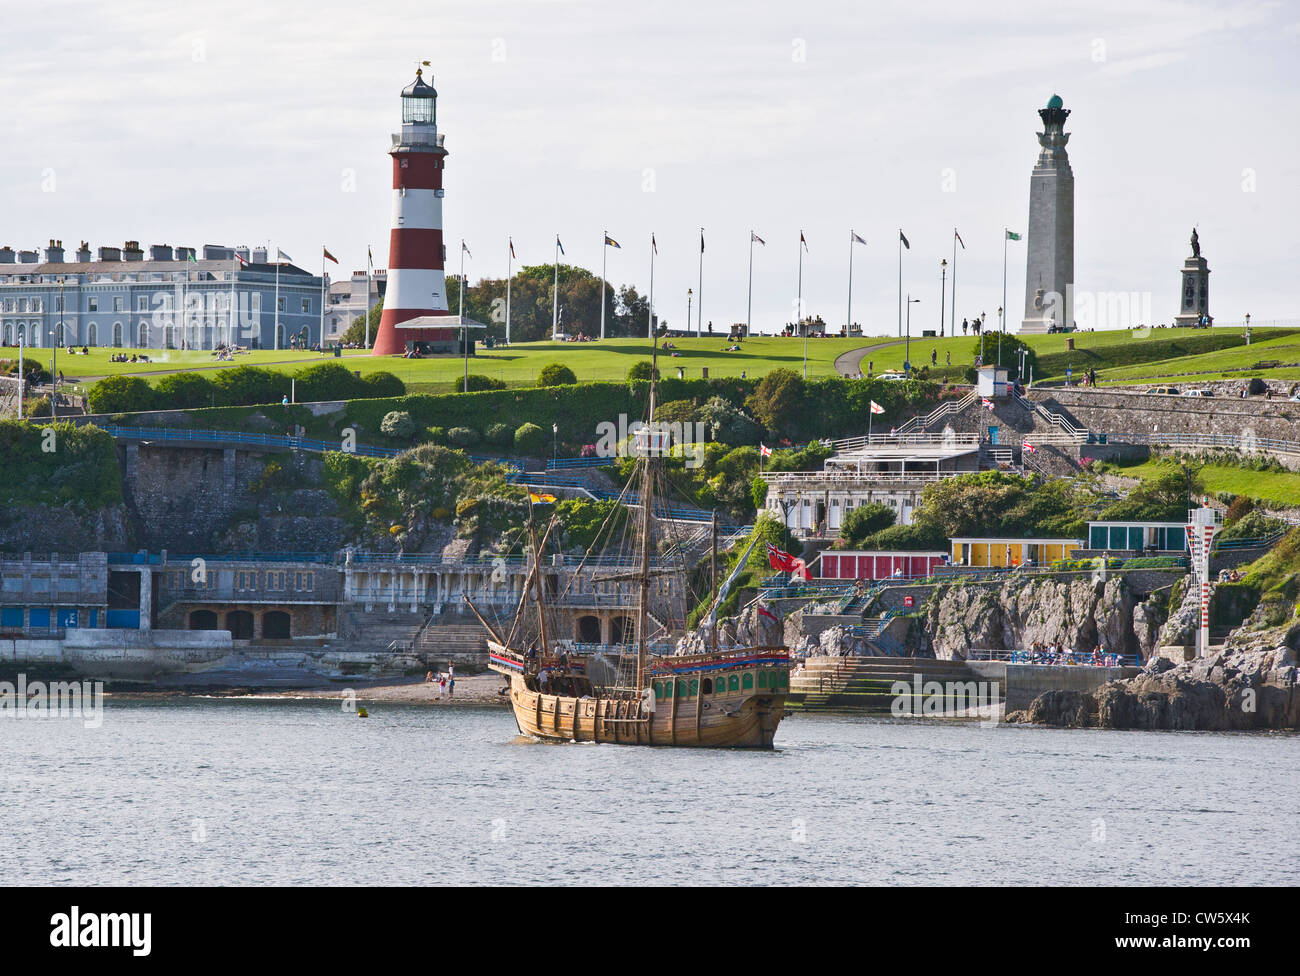 The Matthew, a replica of a 15th century caravel, anchored off Plymouth Hoe, Devon, UK - Stock Image